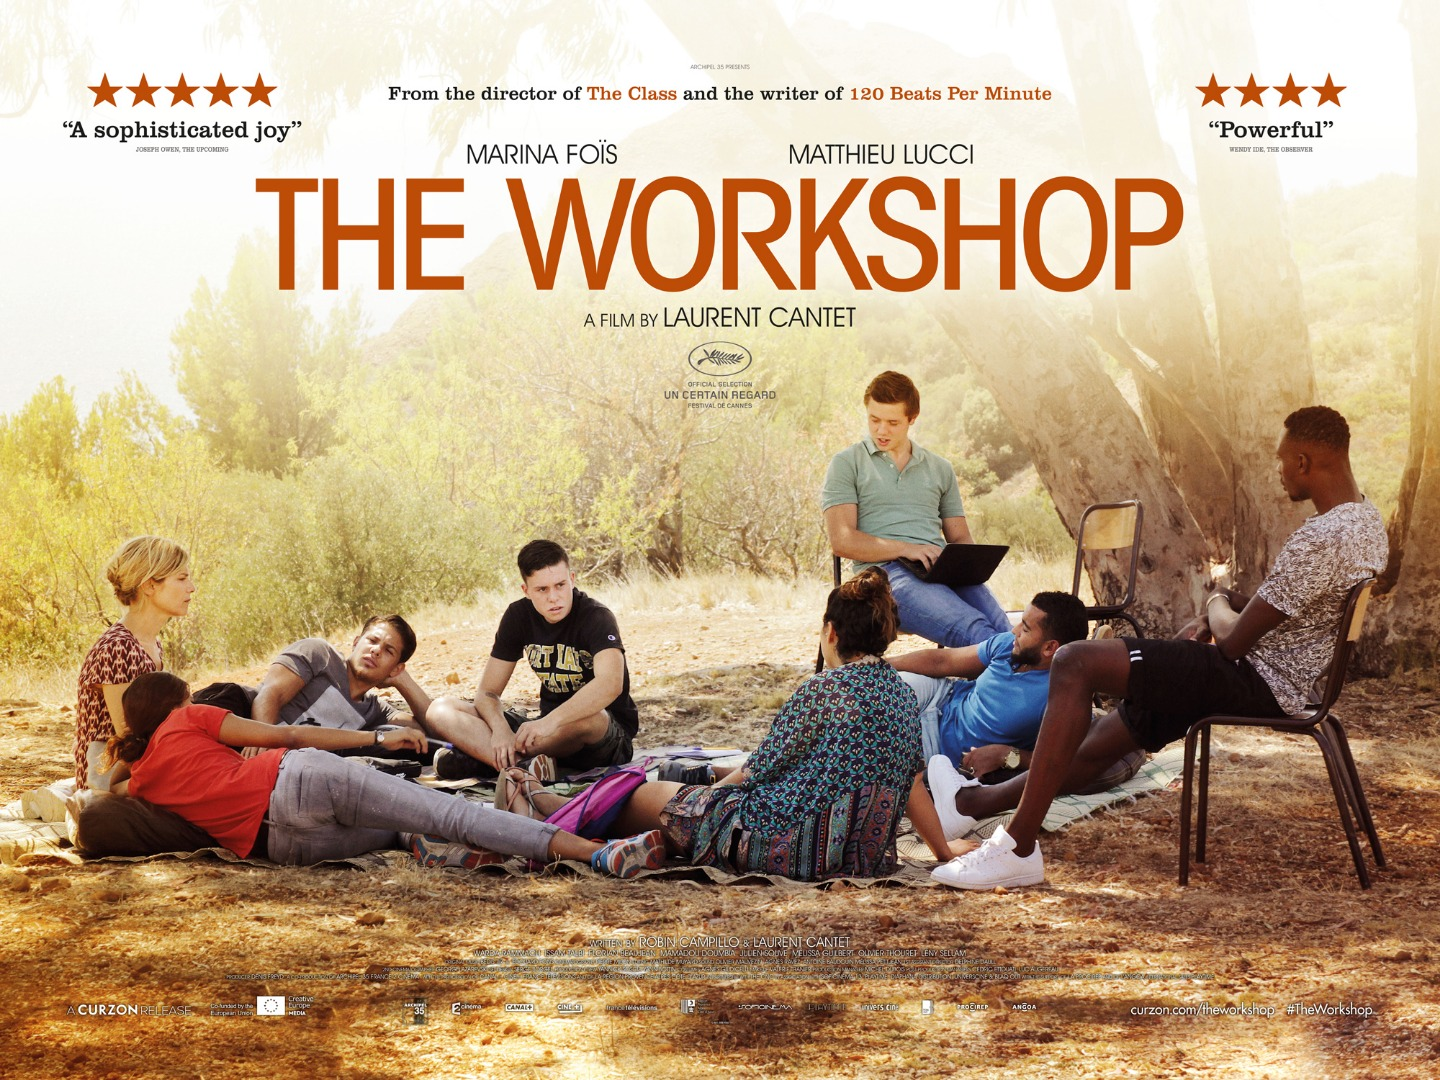 The Workshop - Curzon Artificial Eye